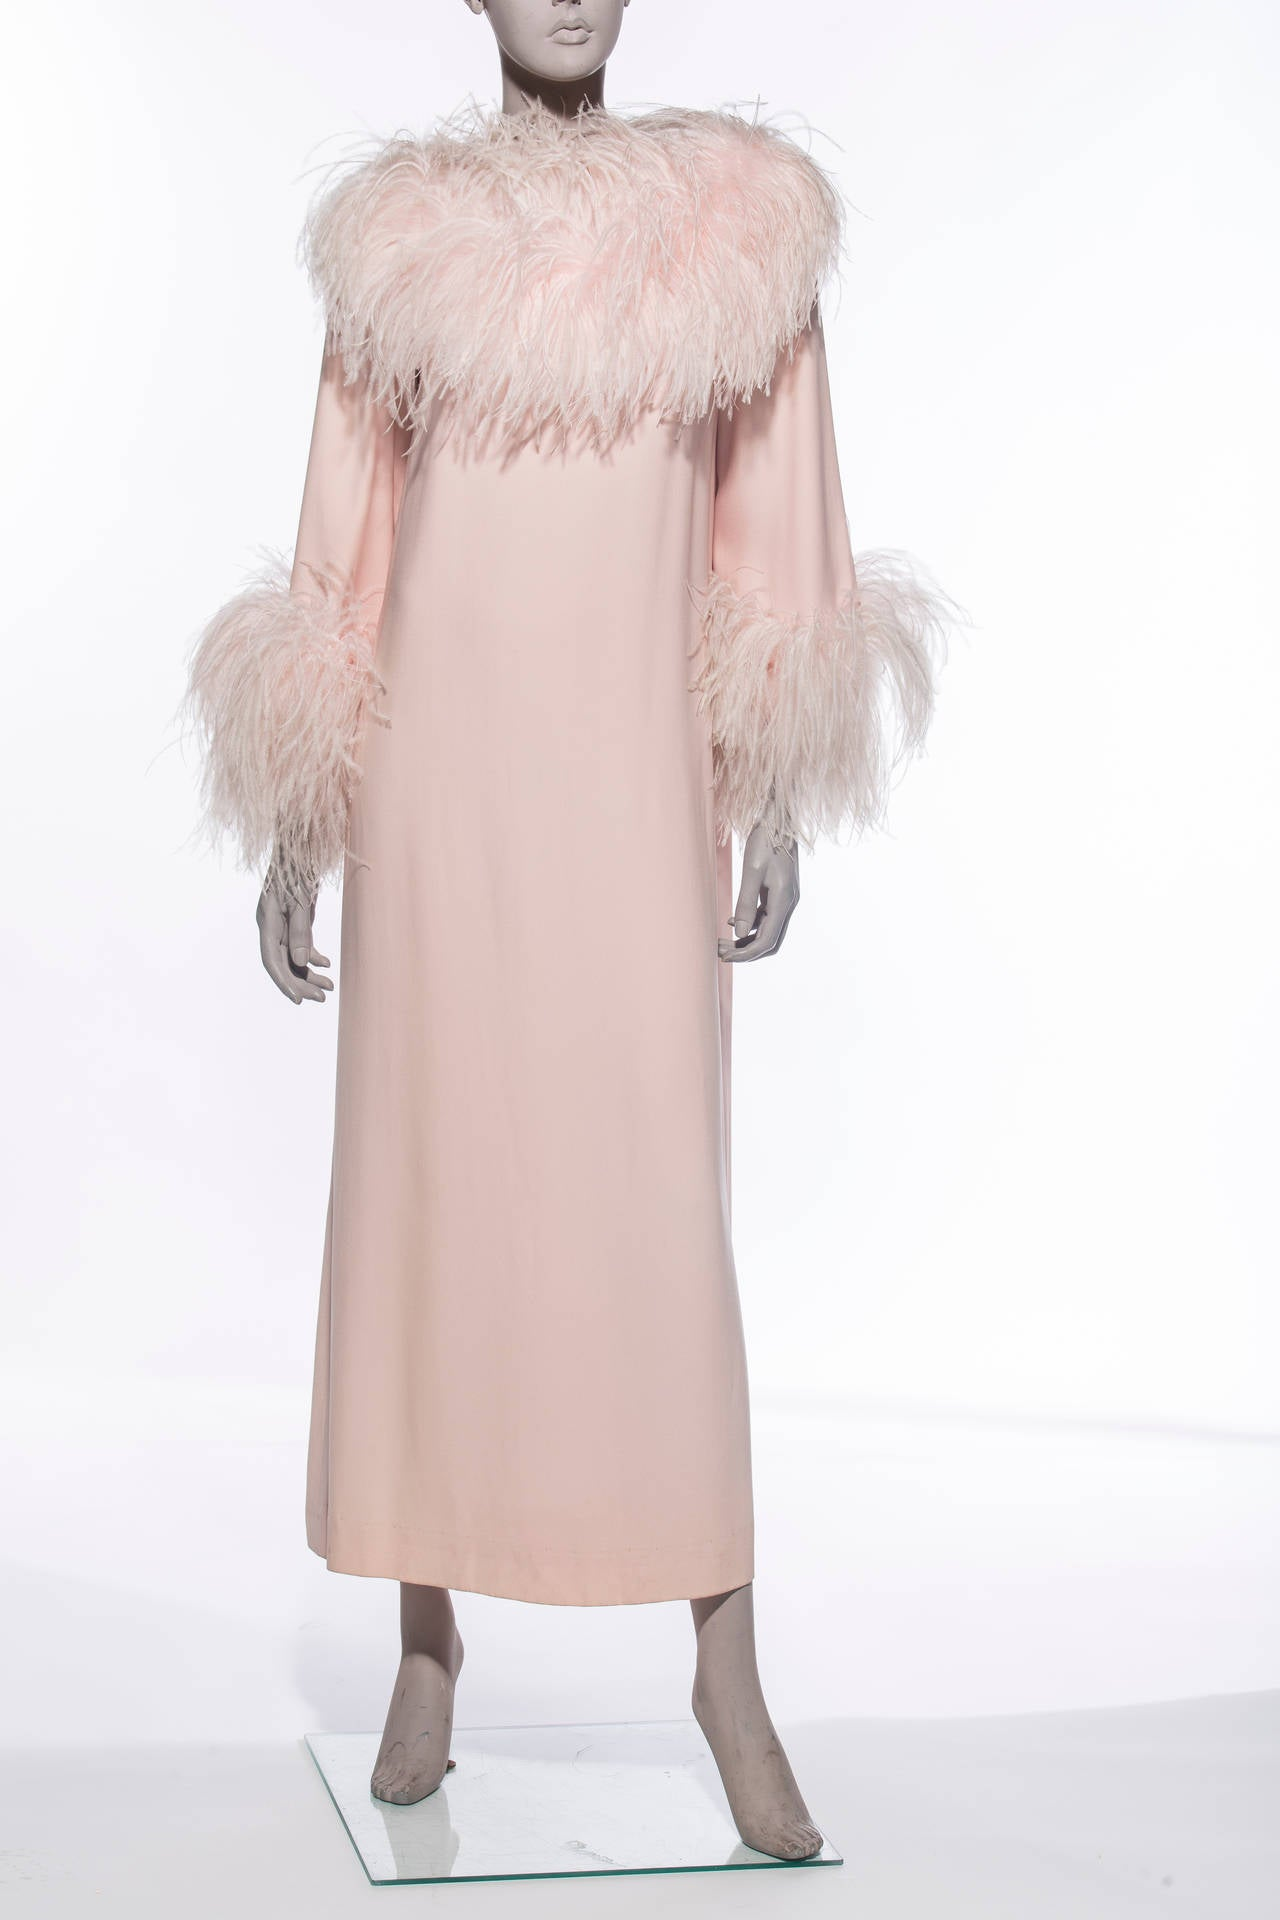 Lucie Ann soft pink peignoir trimmed with marabou, two front pockets, back zip and fully lined.